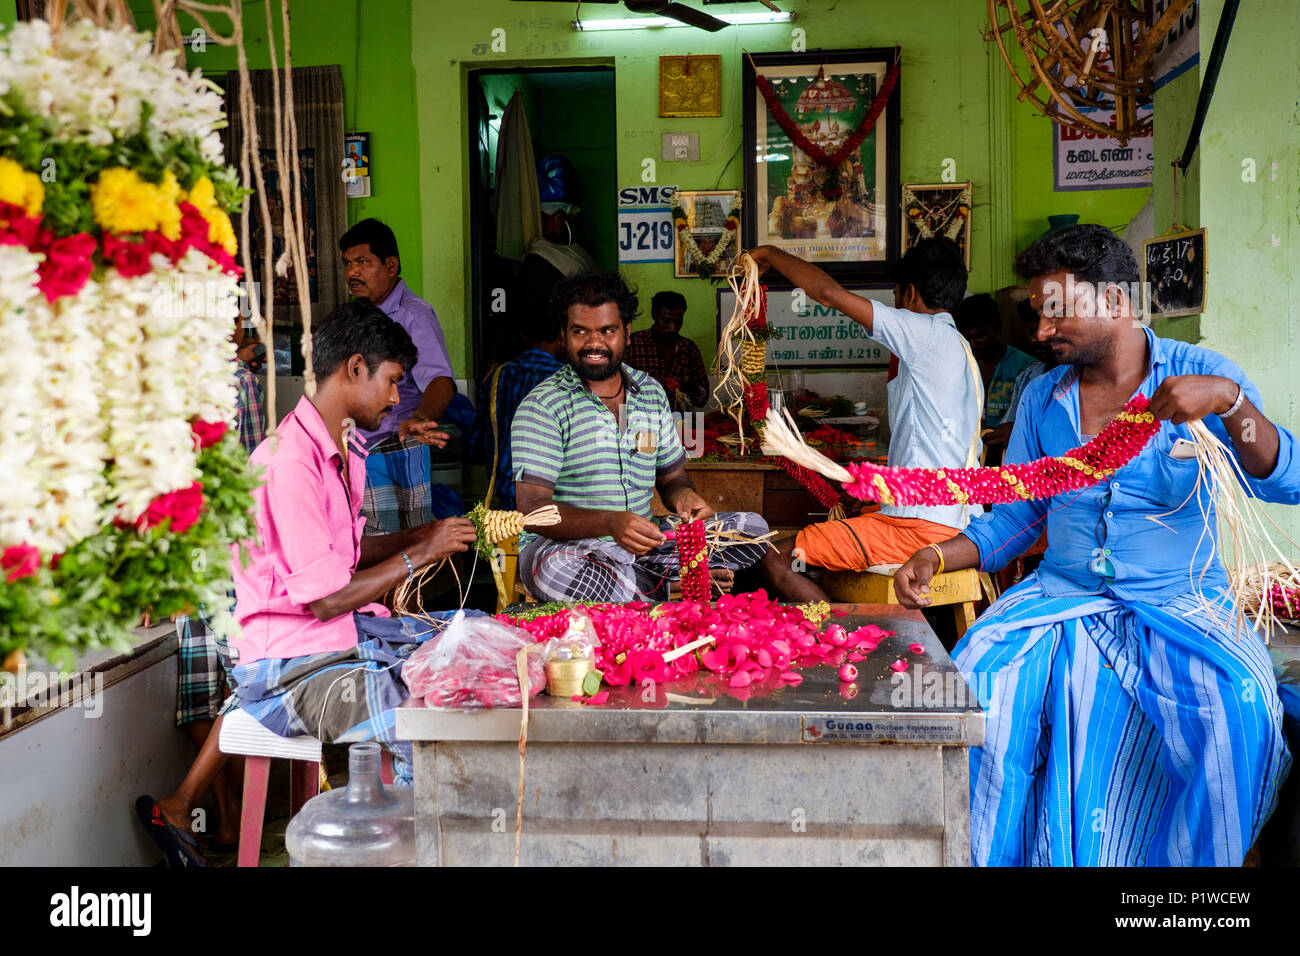 Indian men making flower garlands at Madurai Flower market, Mattuthavani, Madurai District, Tamil Nadu, India. - Stock Image